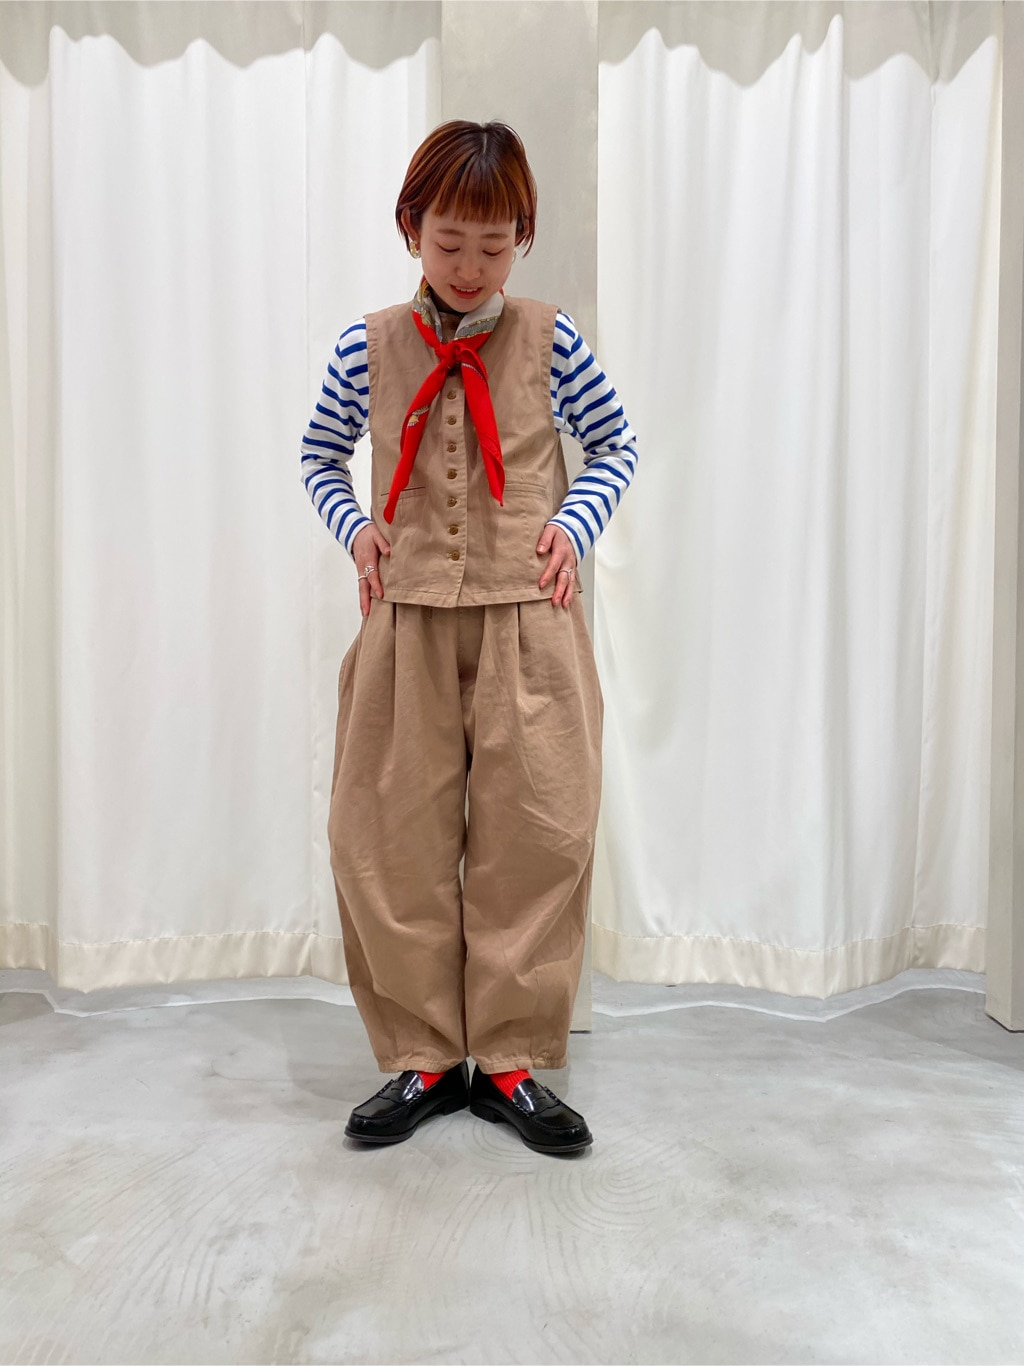 Dot and Stripes CHILD WOMAN 新宿ミロード 身長:150cm 2020.04.30